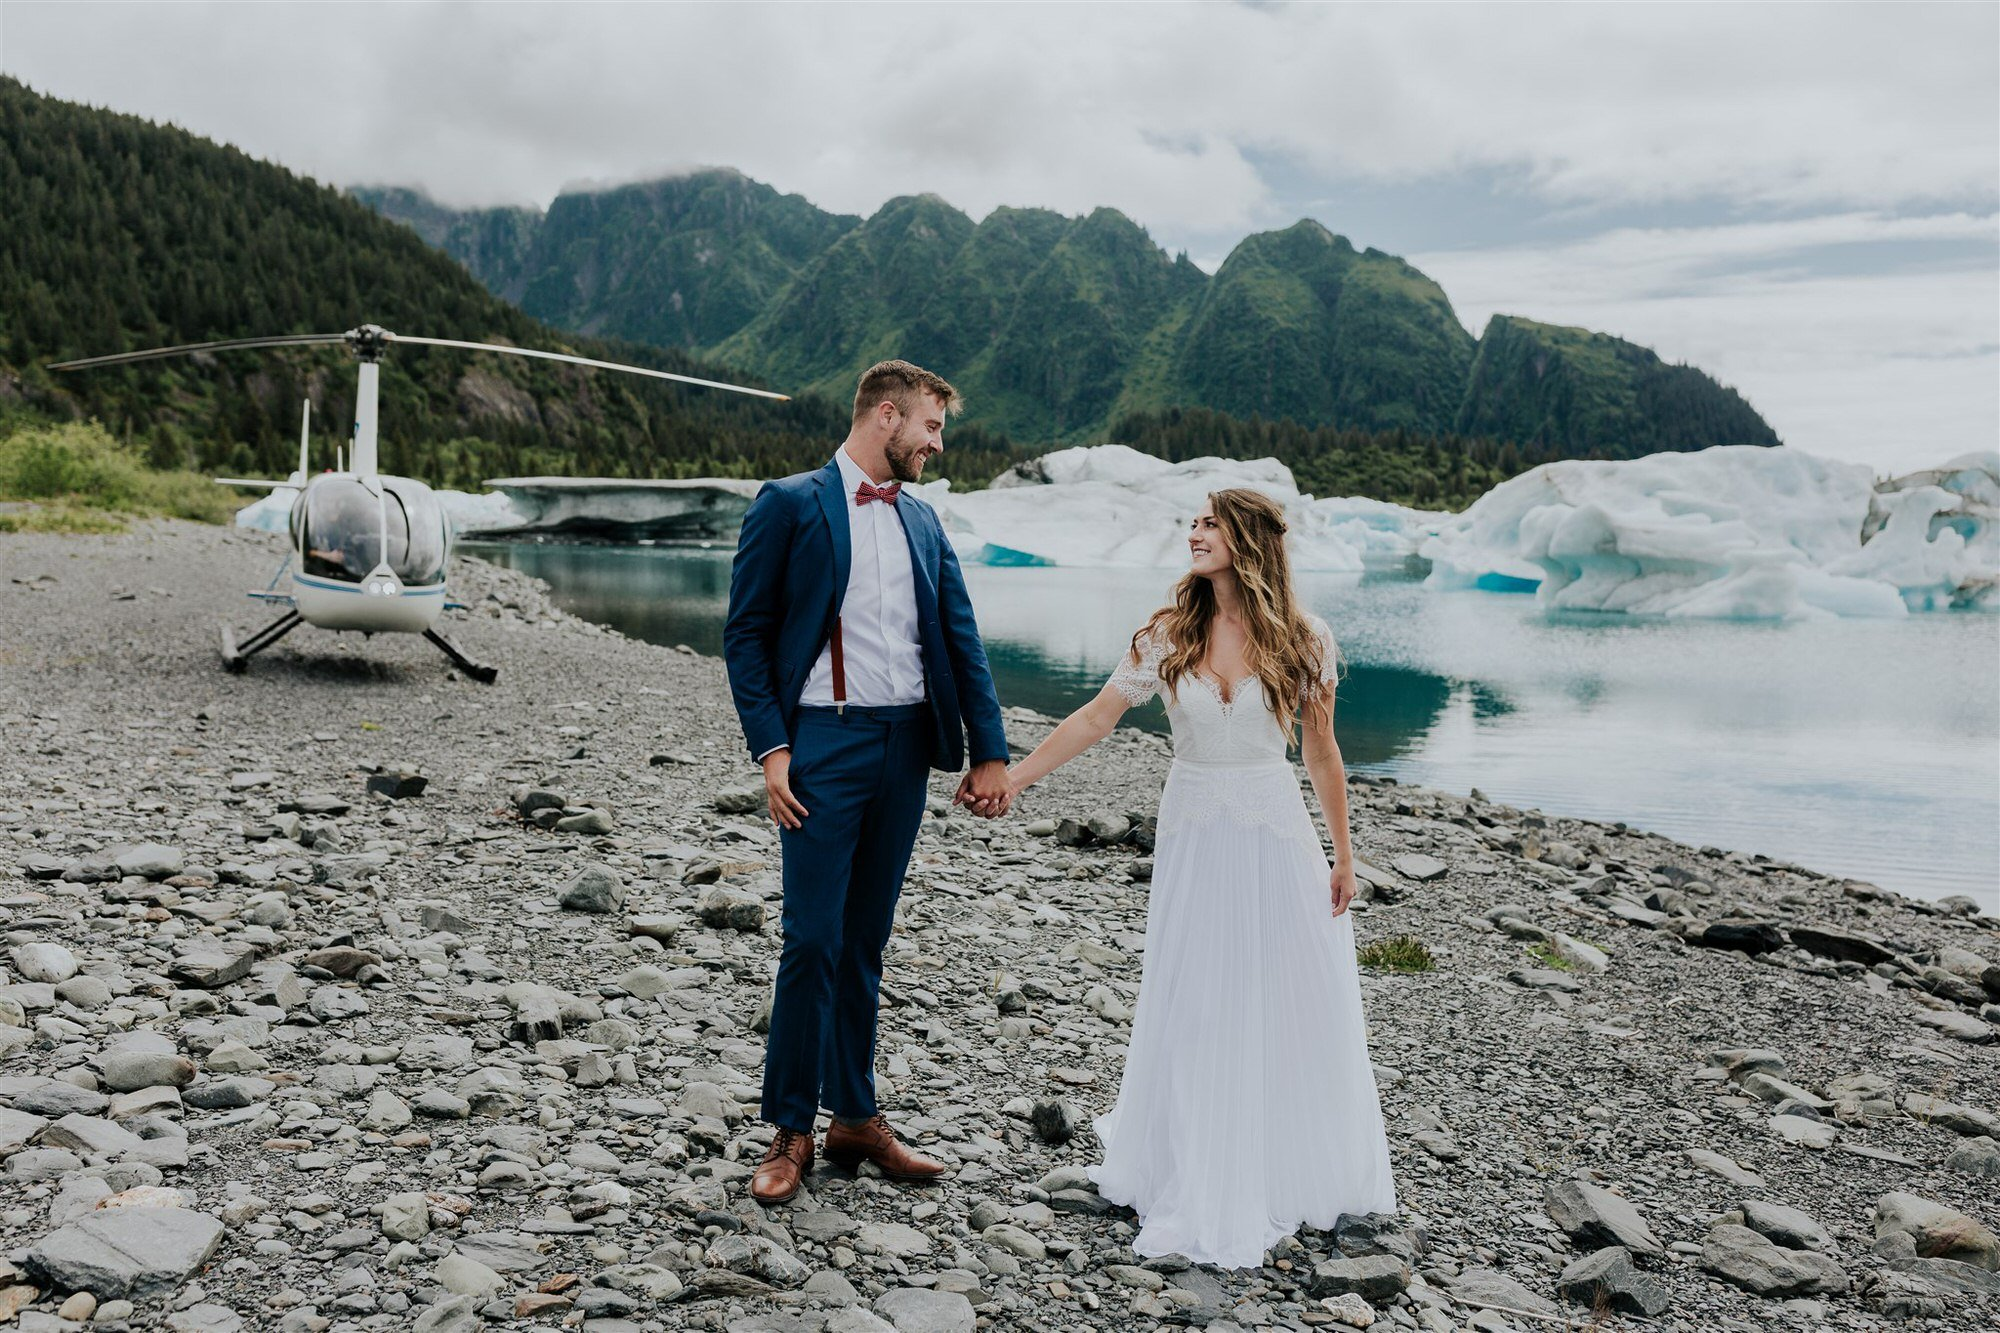 helicopter elopement inspiration in Alaska surrounded by glaciers